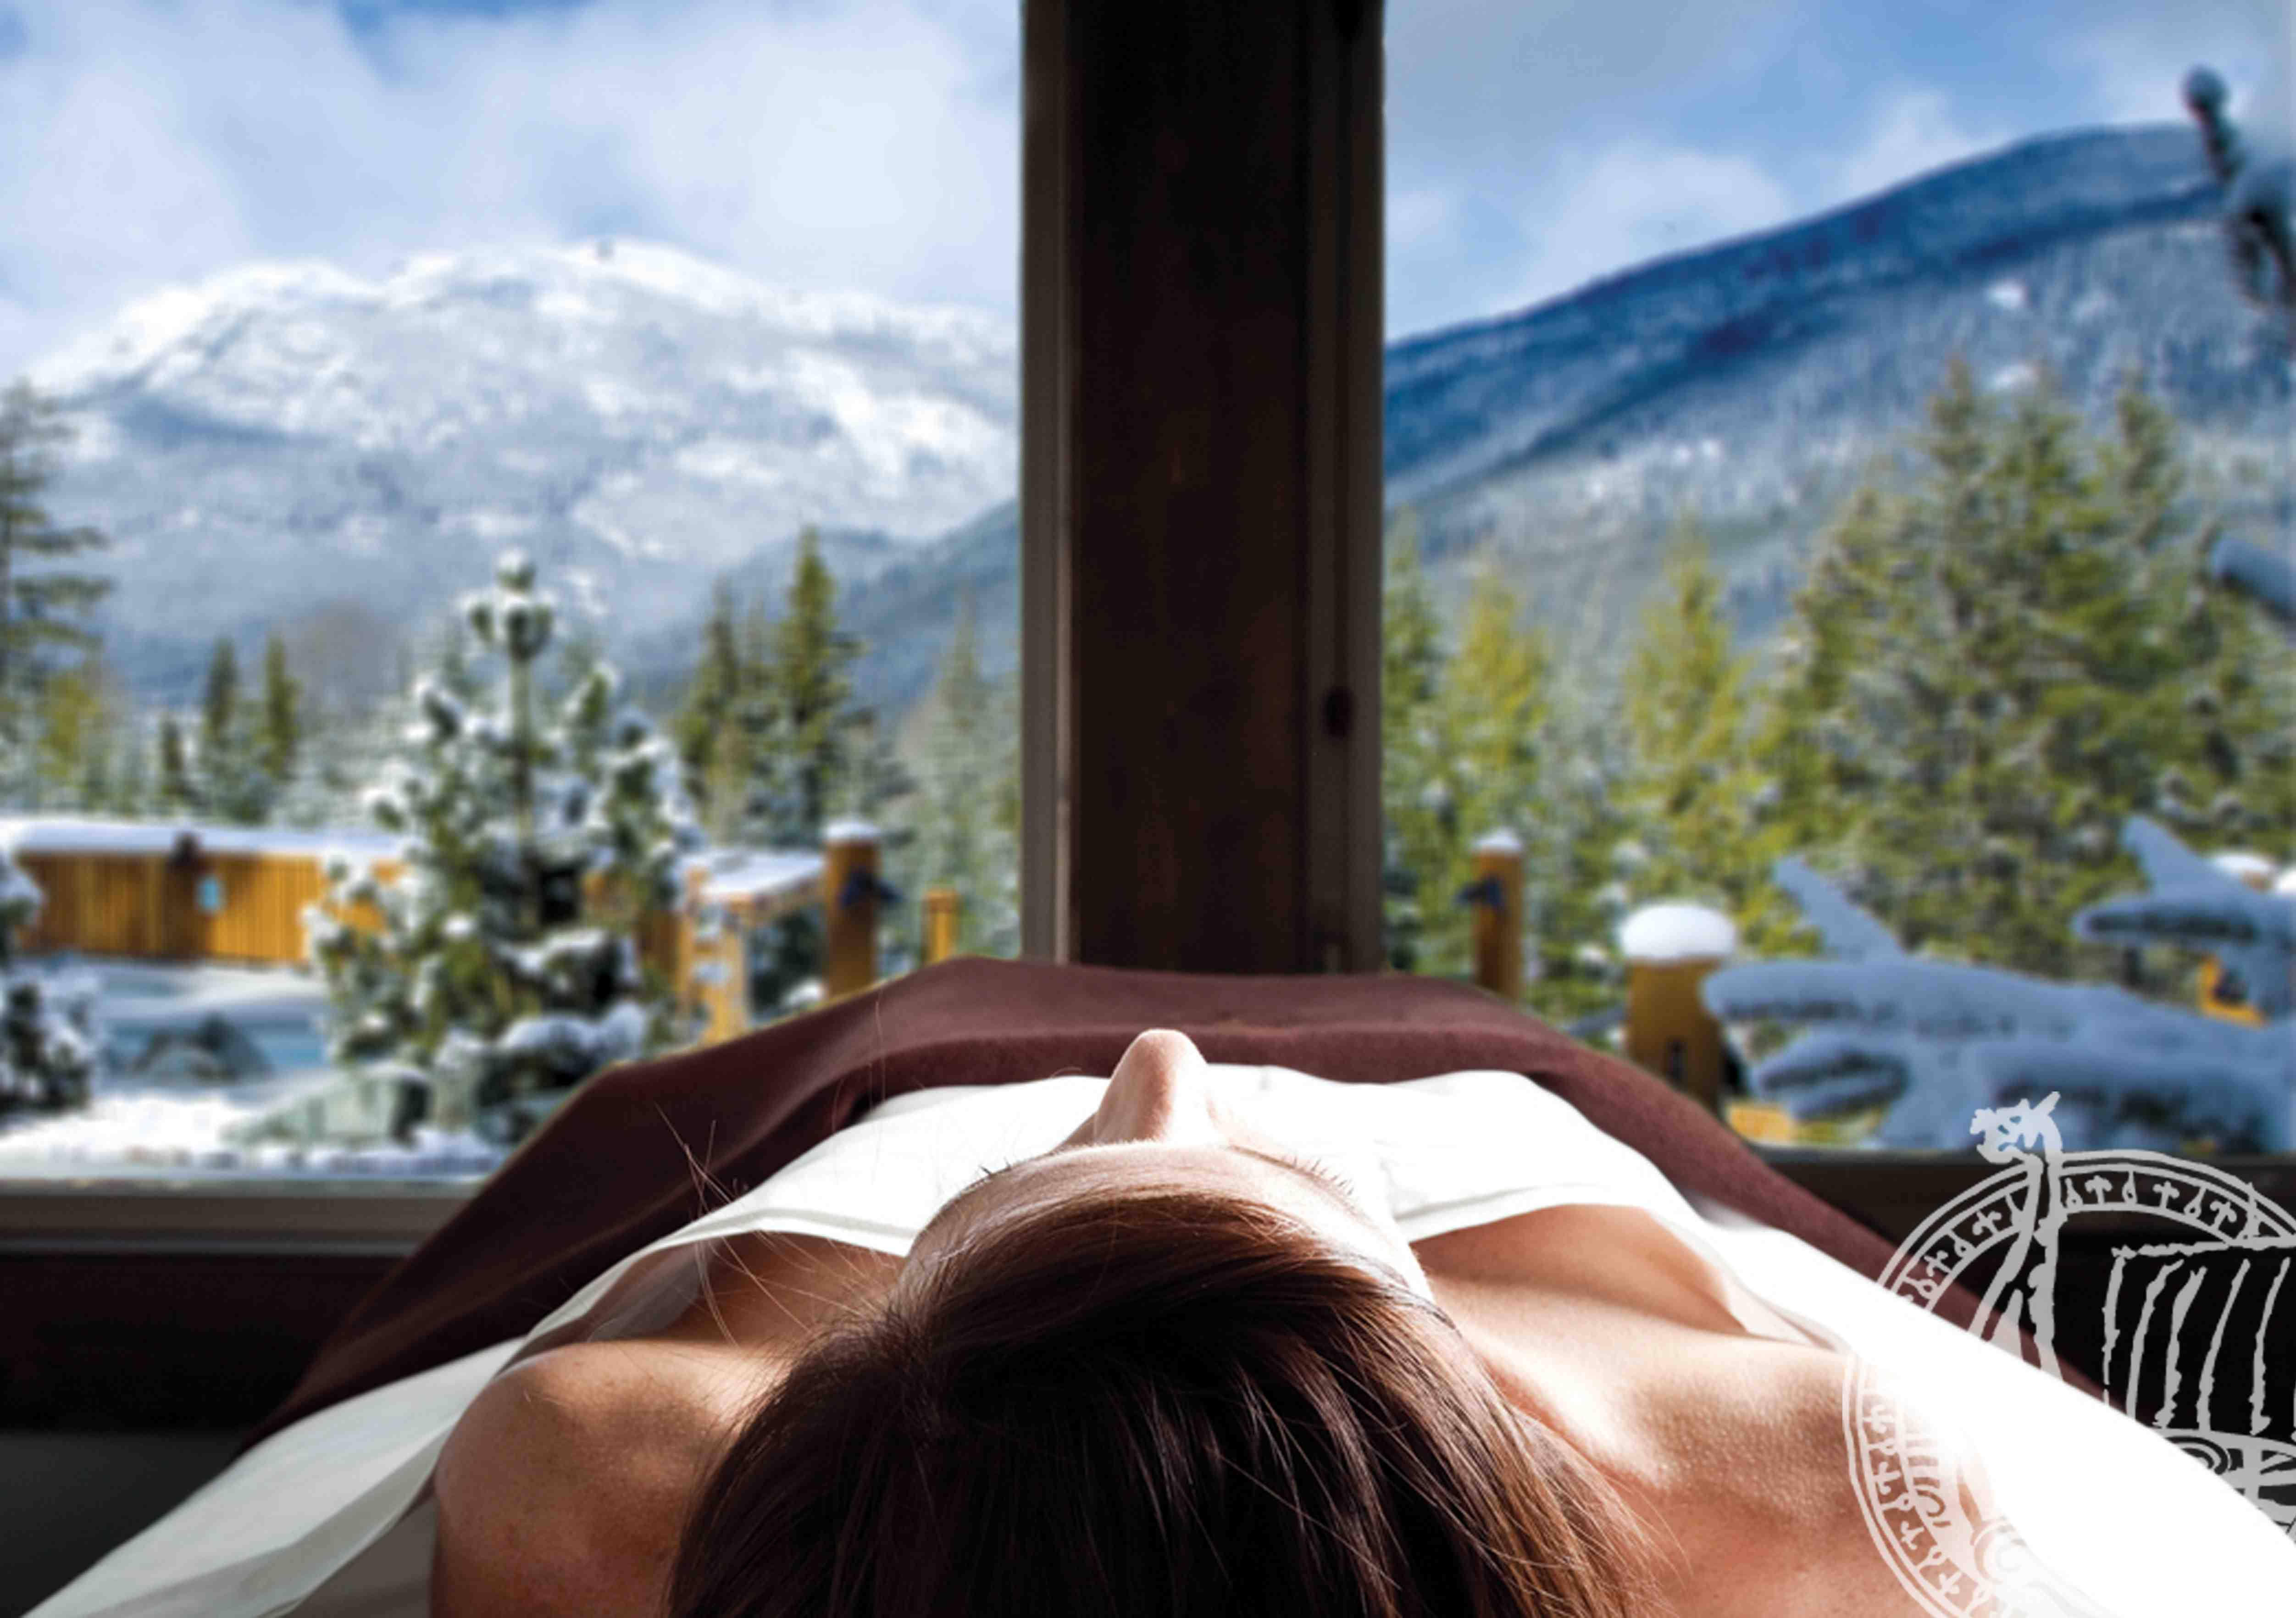 Relax at the Scandinave Spa Whistler, (EnjoyWhistler.com)